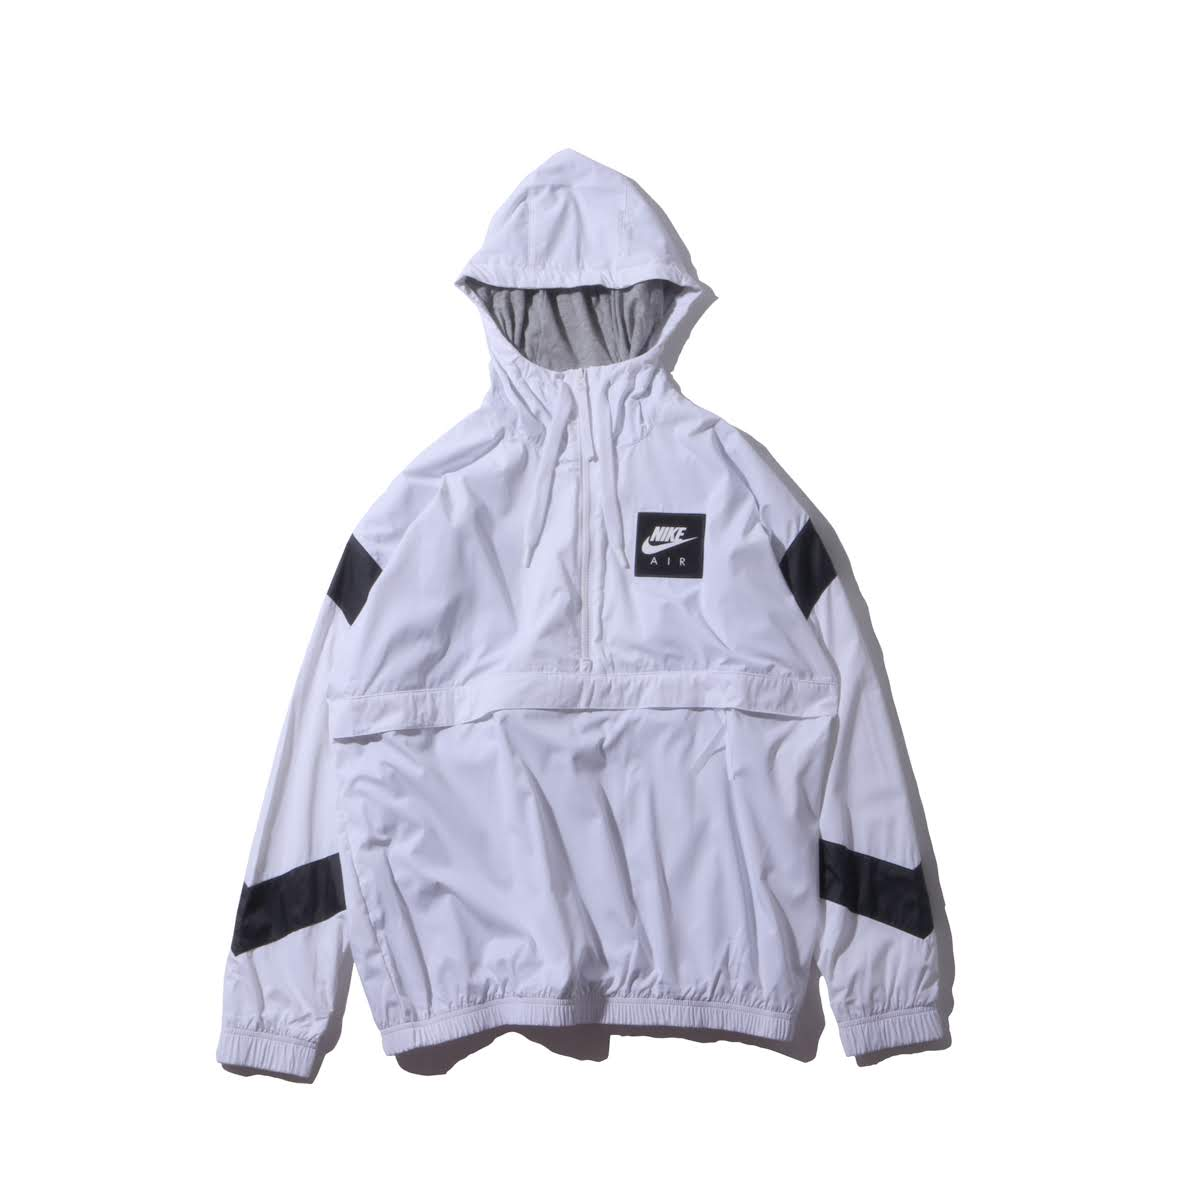 Abolido abrazo erupción  buy > nike m nsw nike air jkt hd wvn, Up to 77% OFF